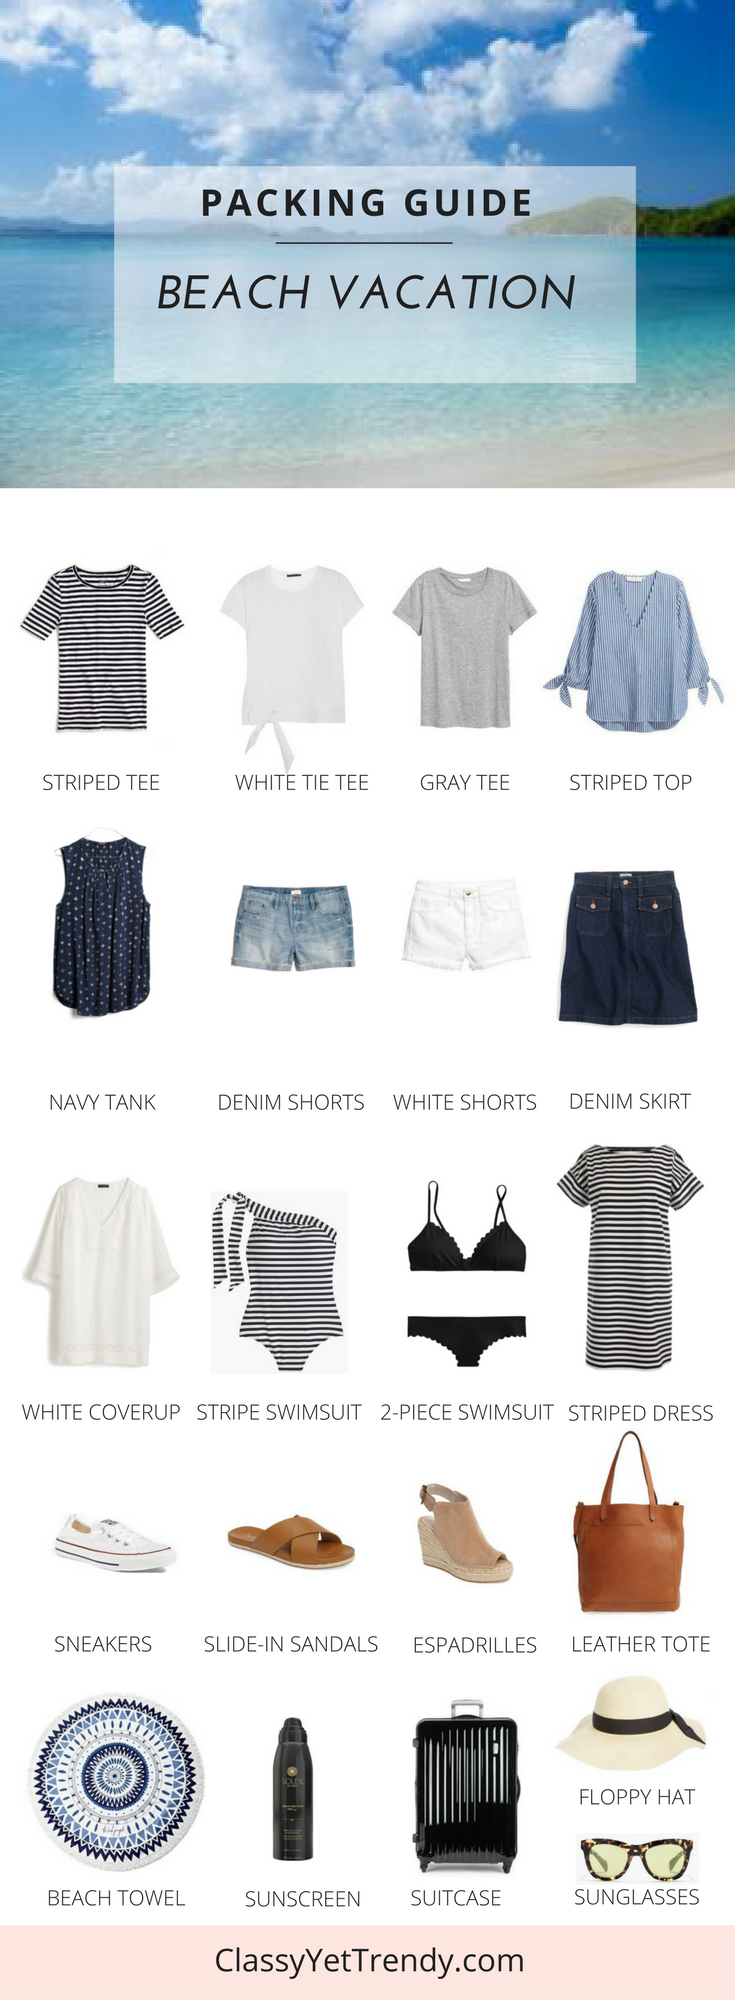 Packing Guide Spring Break At The Beach Classy Yet Trendy